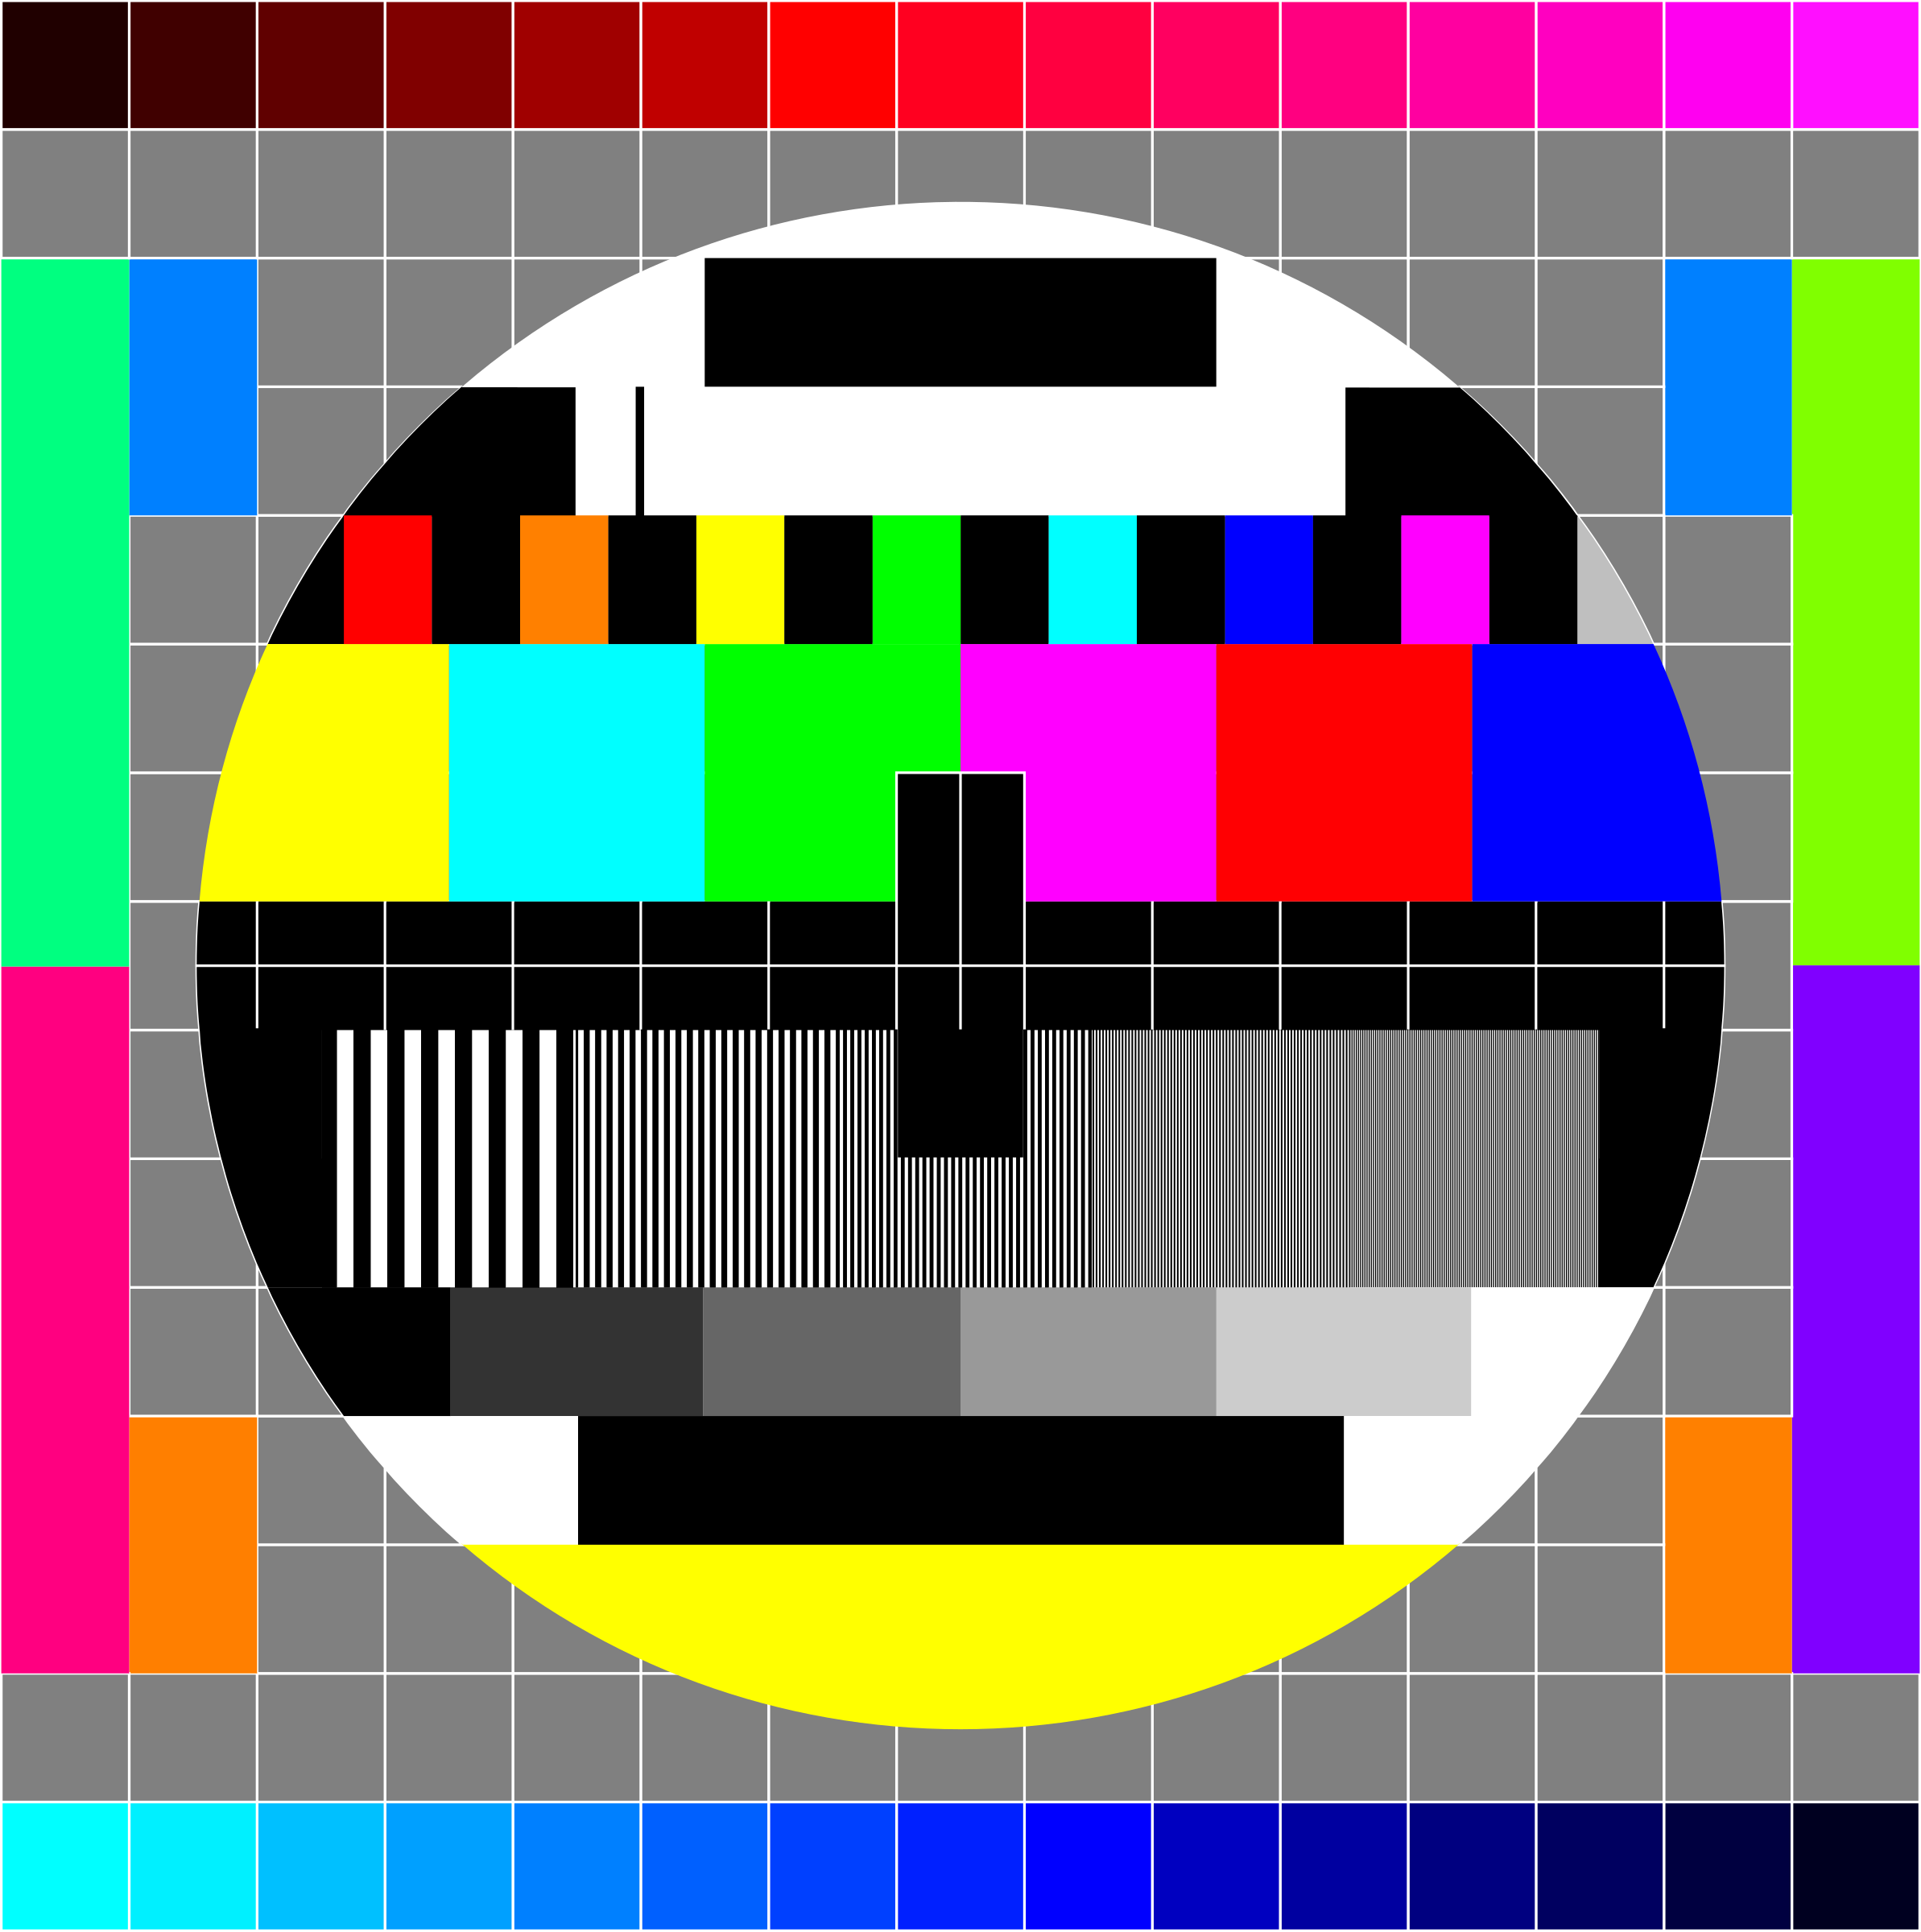 TV Testscreen square shape with some more colors by Manuela.